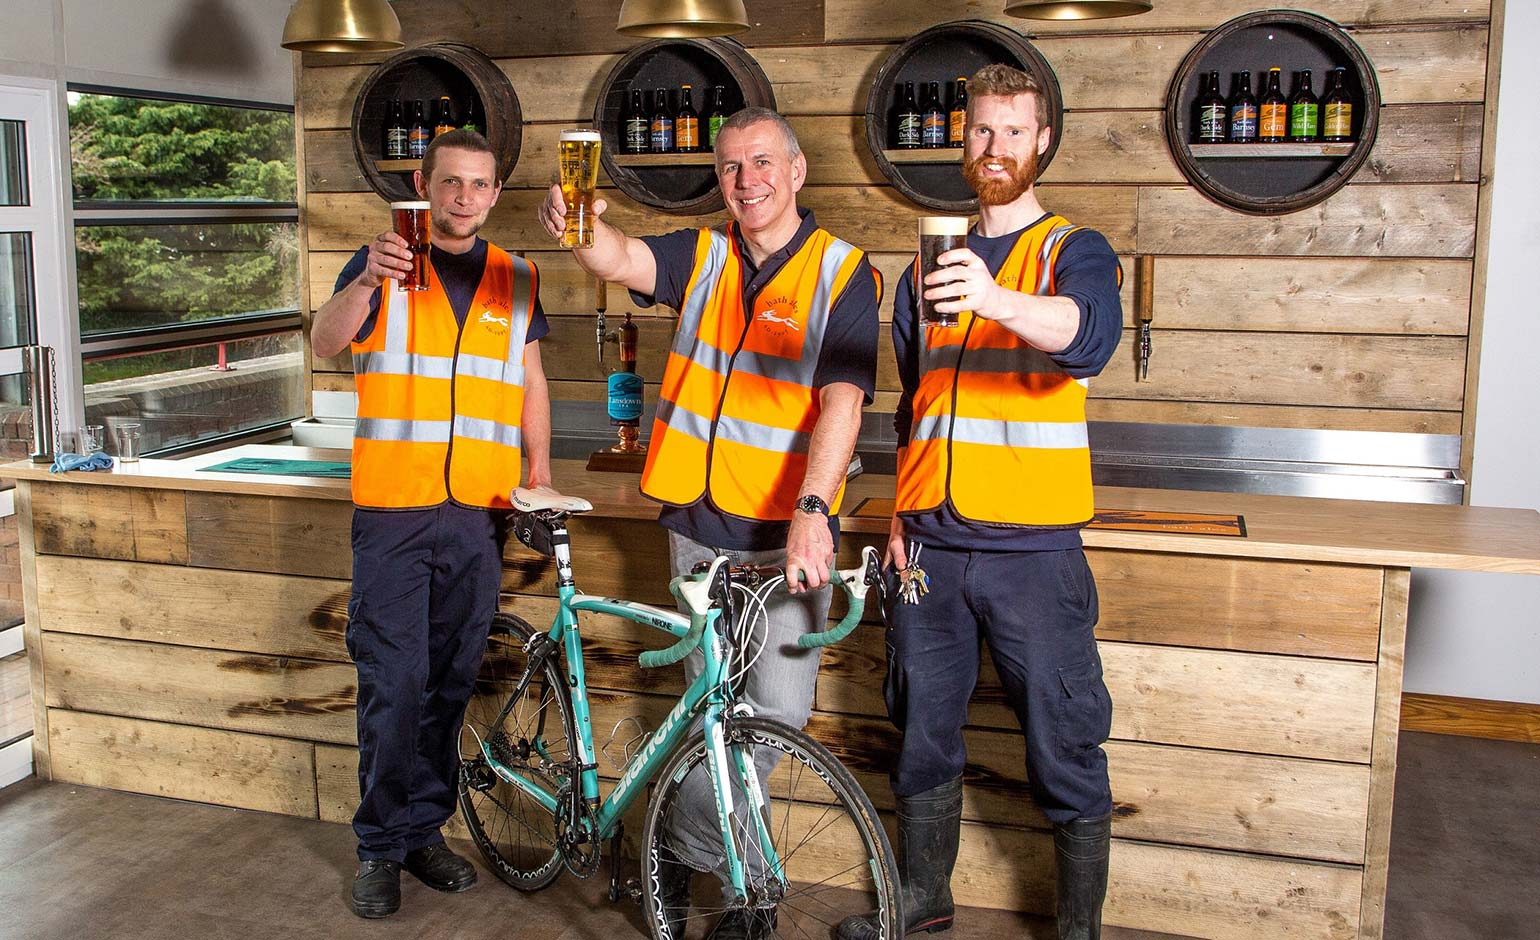 Local brewer Bath Ales announces support for this year's Bike Bath event